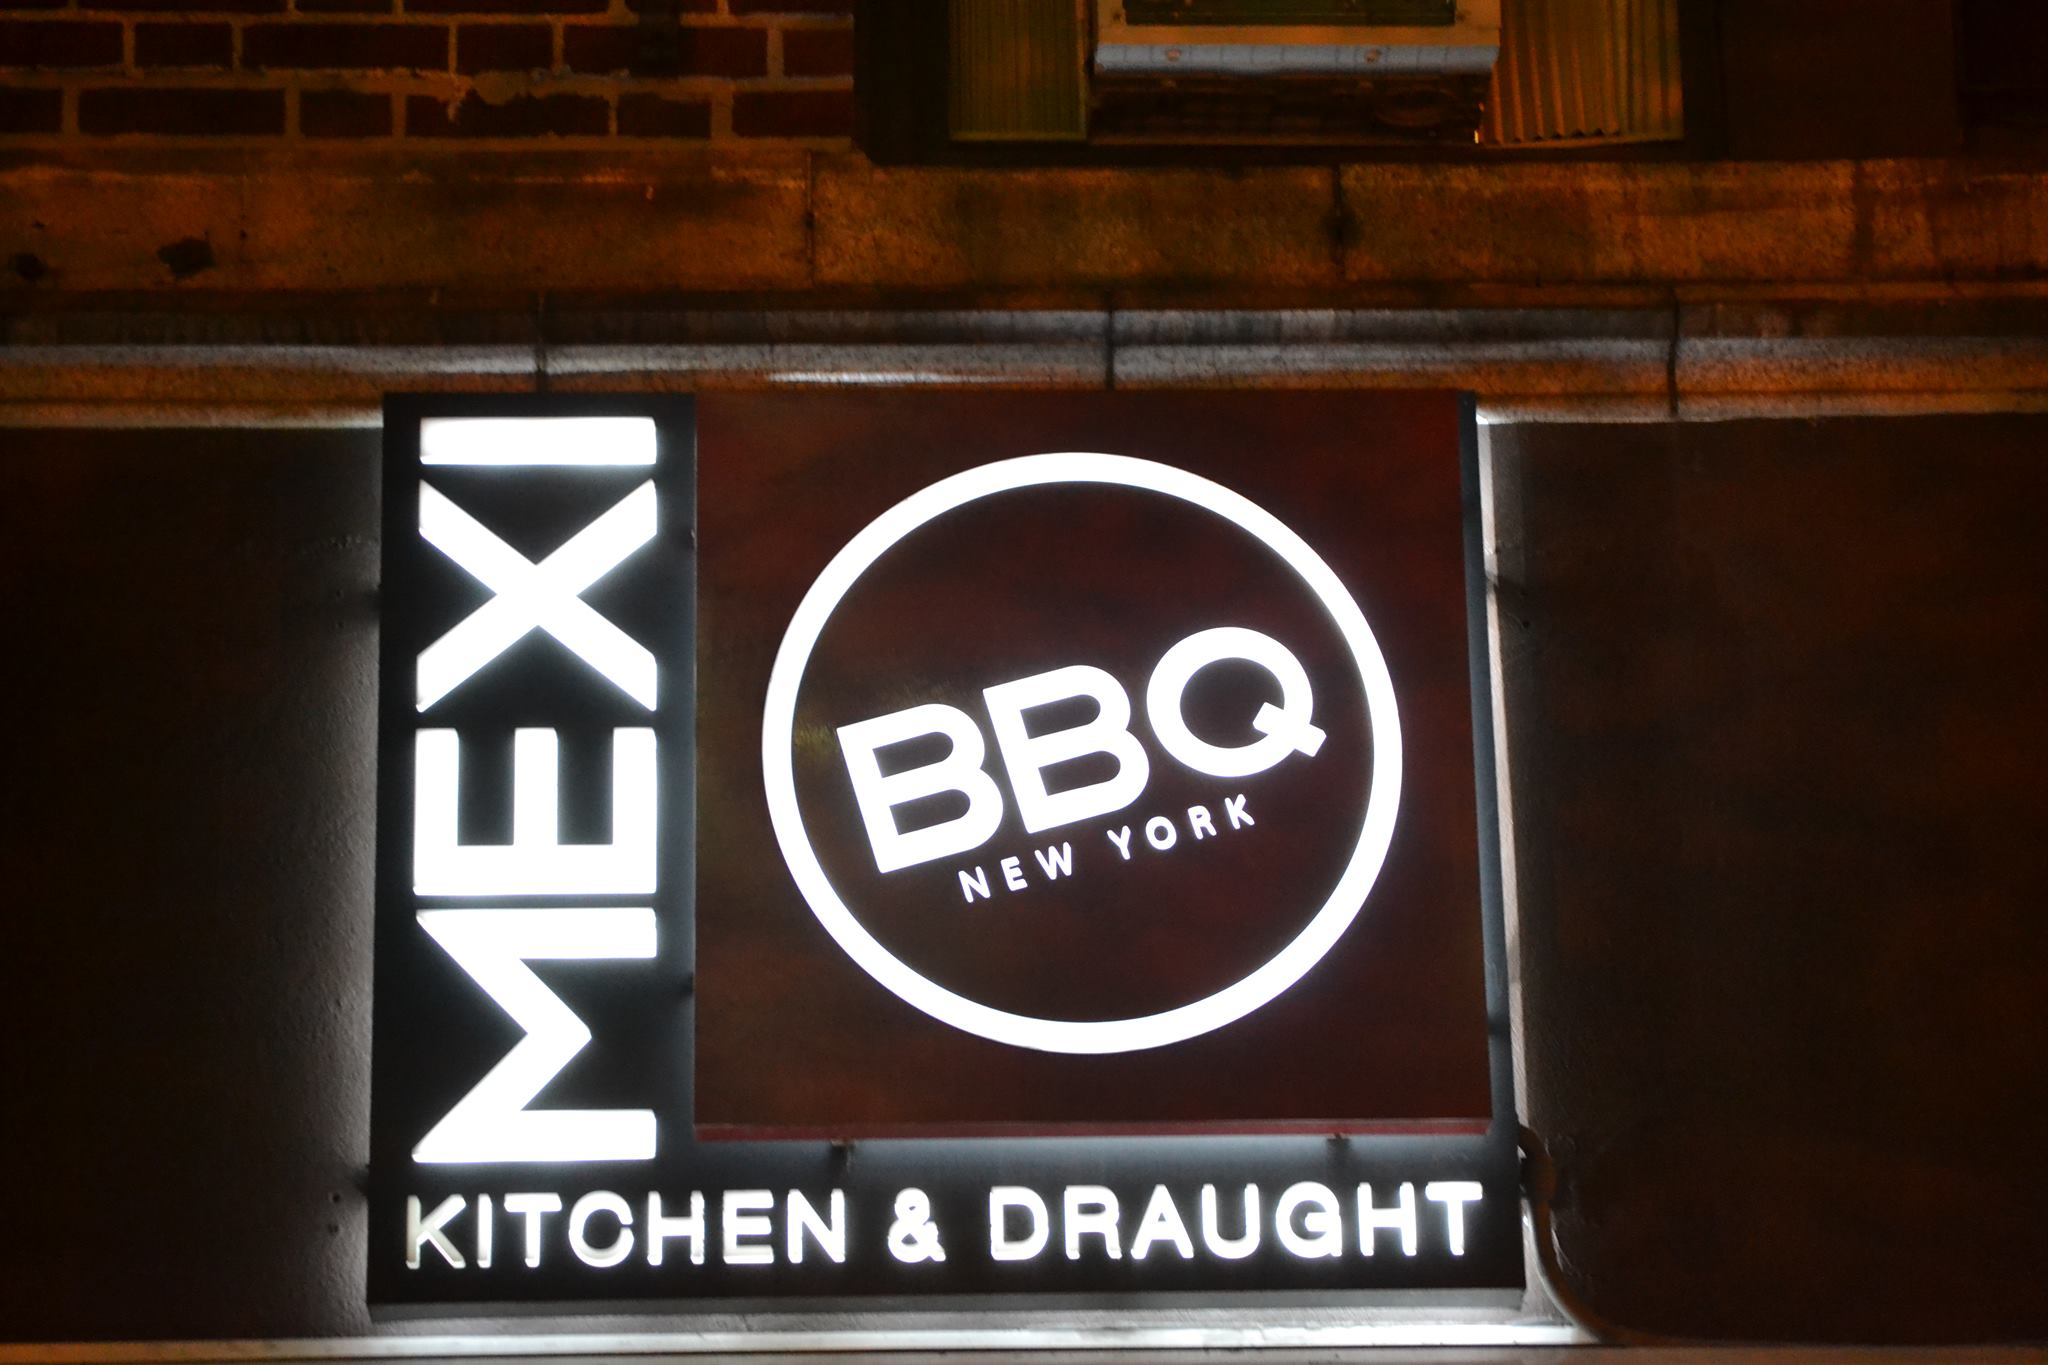 mexibbq-we-heart-astoria-queens